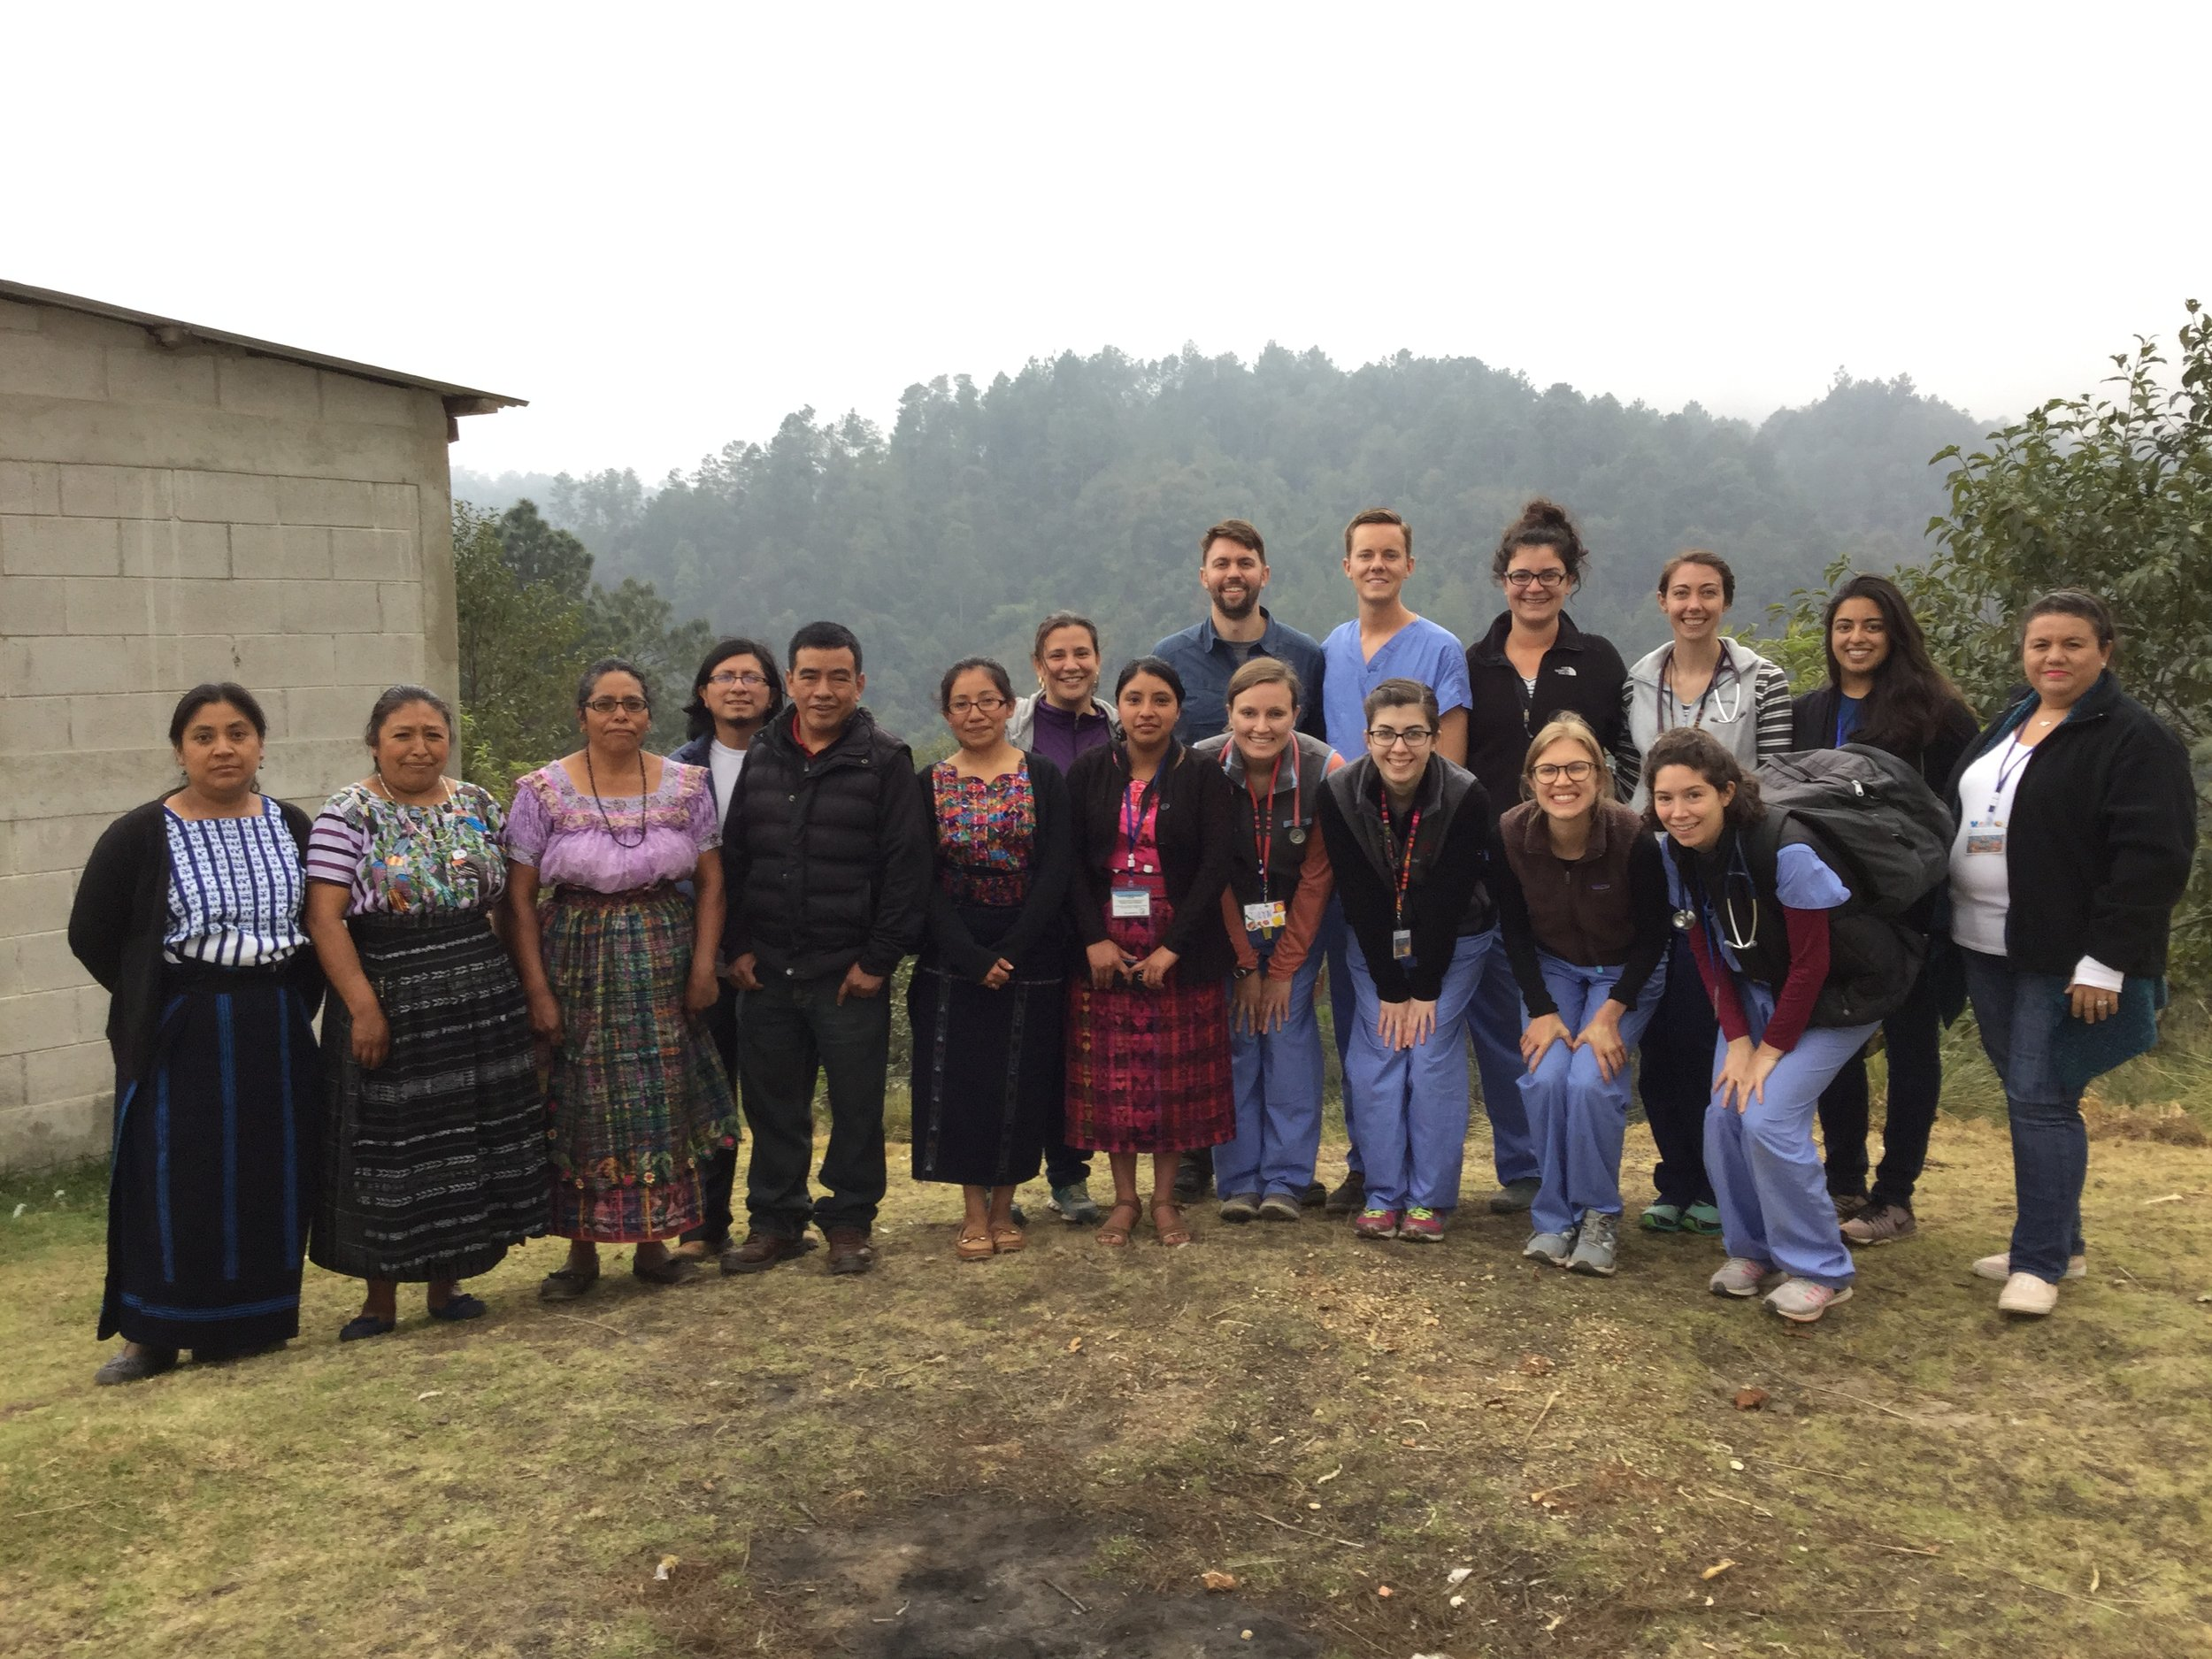 We encountered more Mayan language speaking people when working in the Guatemalan highlands outside of Tecapn and gained a better understanding of the inspiration behind the Mayan Health Alliance. With incredible interpreters and a strong team we were able to provide care in those native languages.